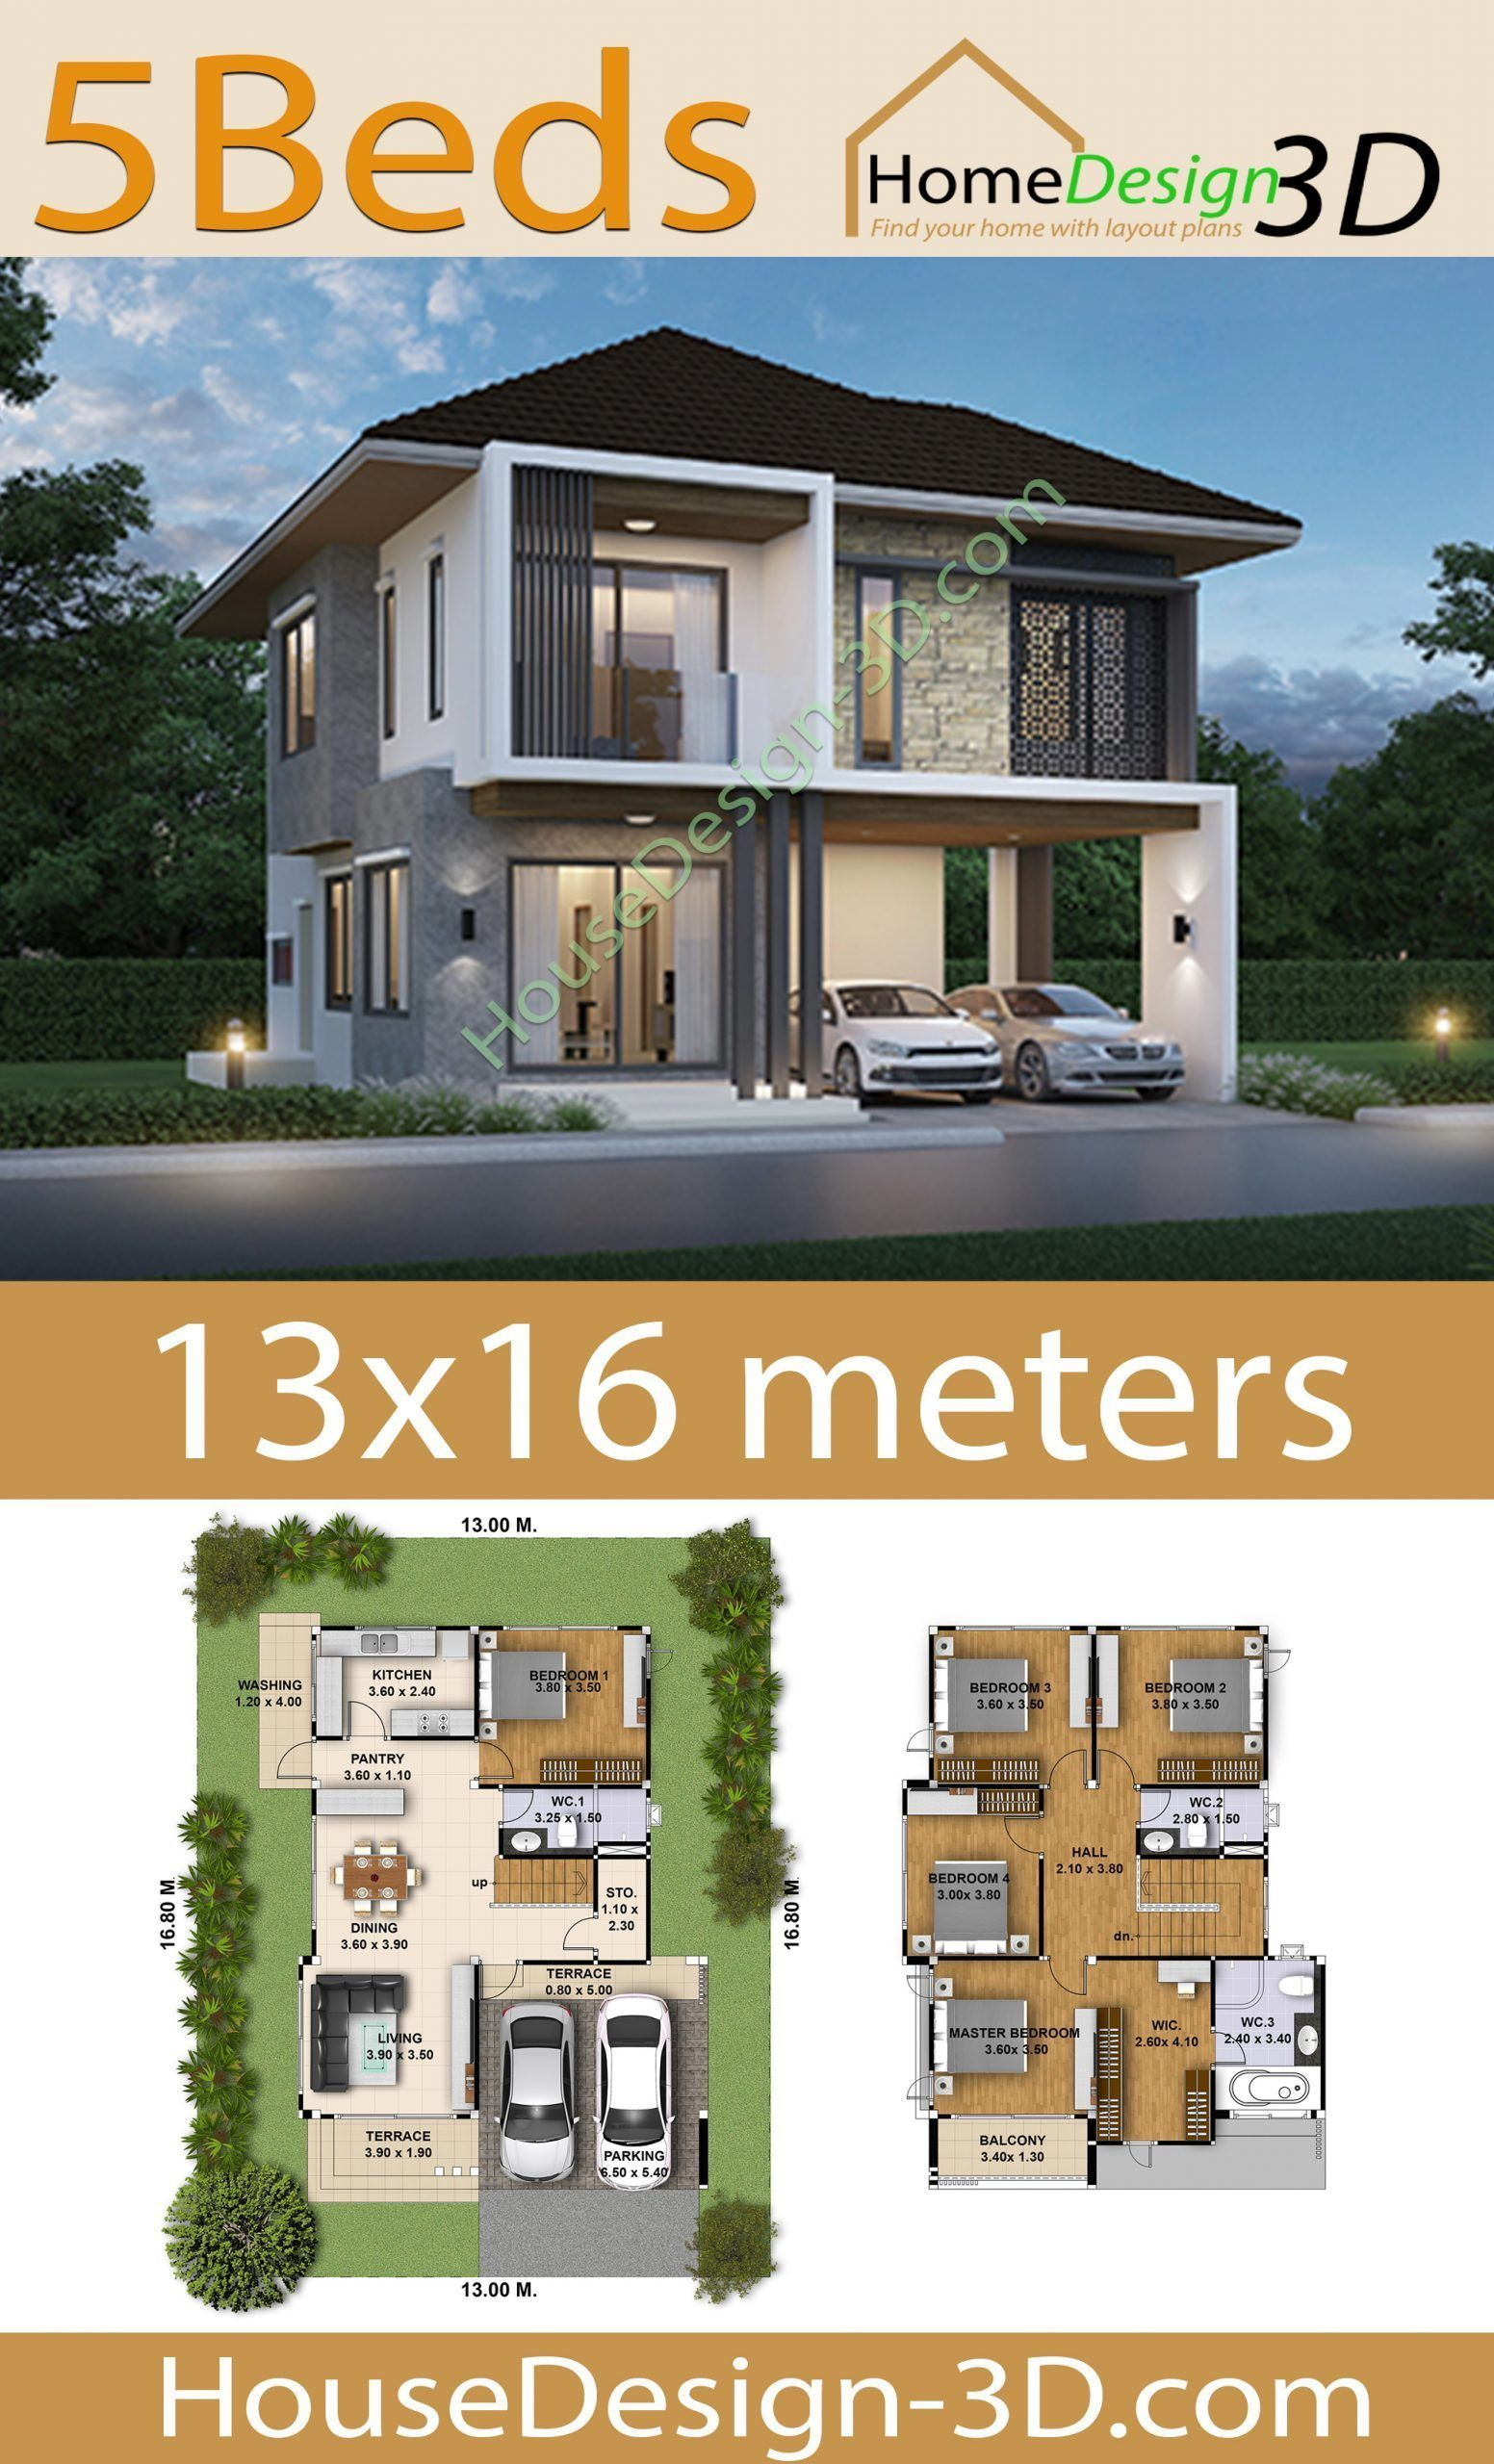 House Design 3d 13x16 With 5 Bedrooms Tiny House Design 3d In 2020 House Design Tiny House Design House